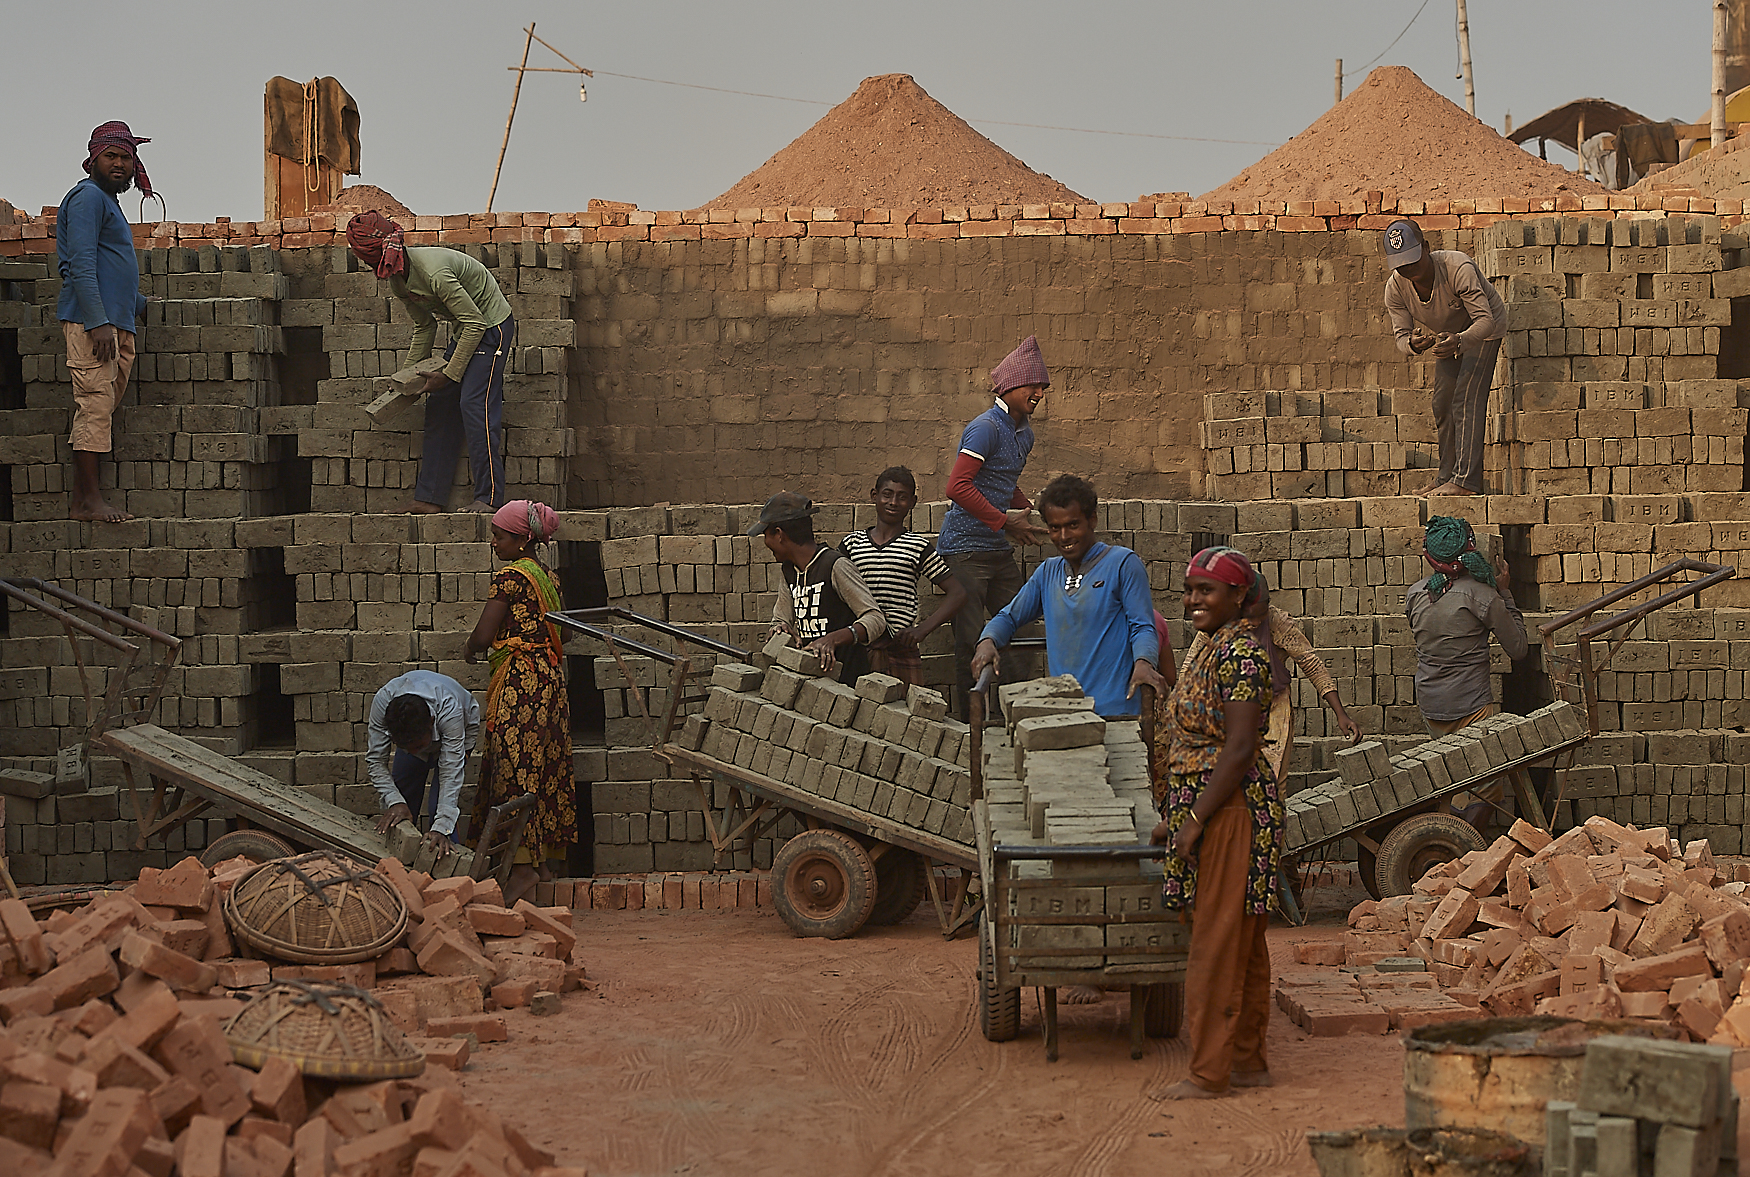 Brick factory workers sometime work as entire families, including men, women and children, each in distinct roles